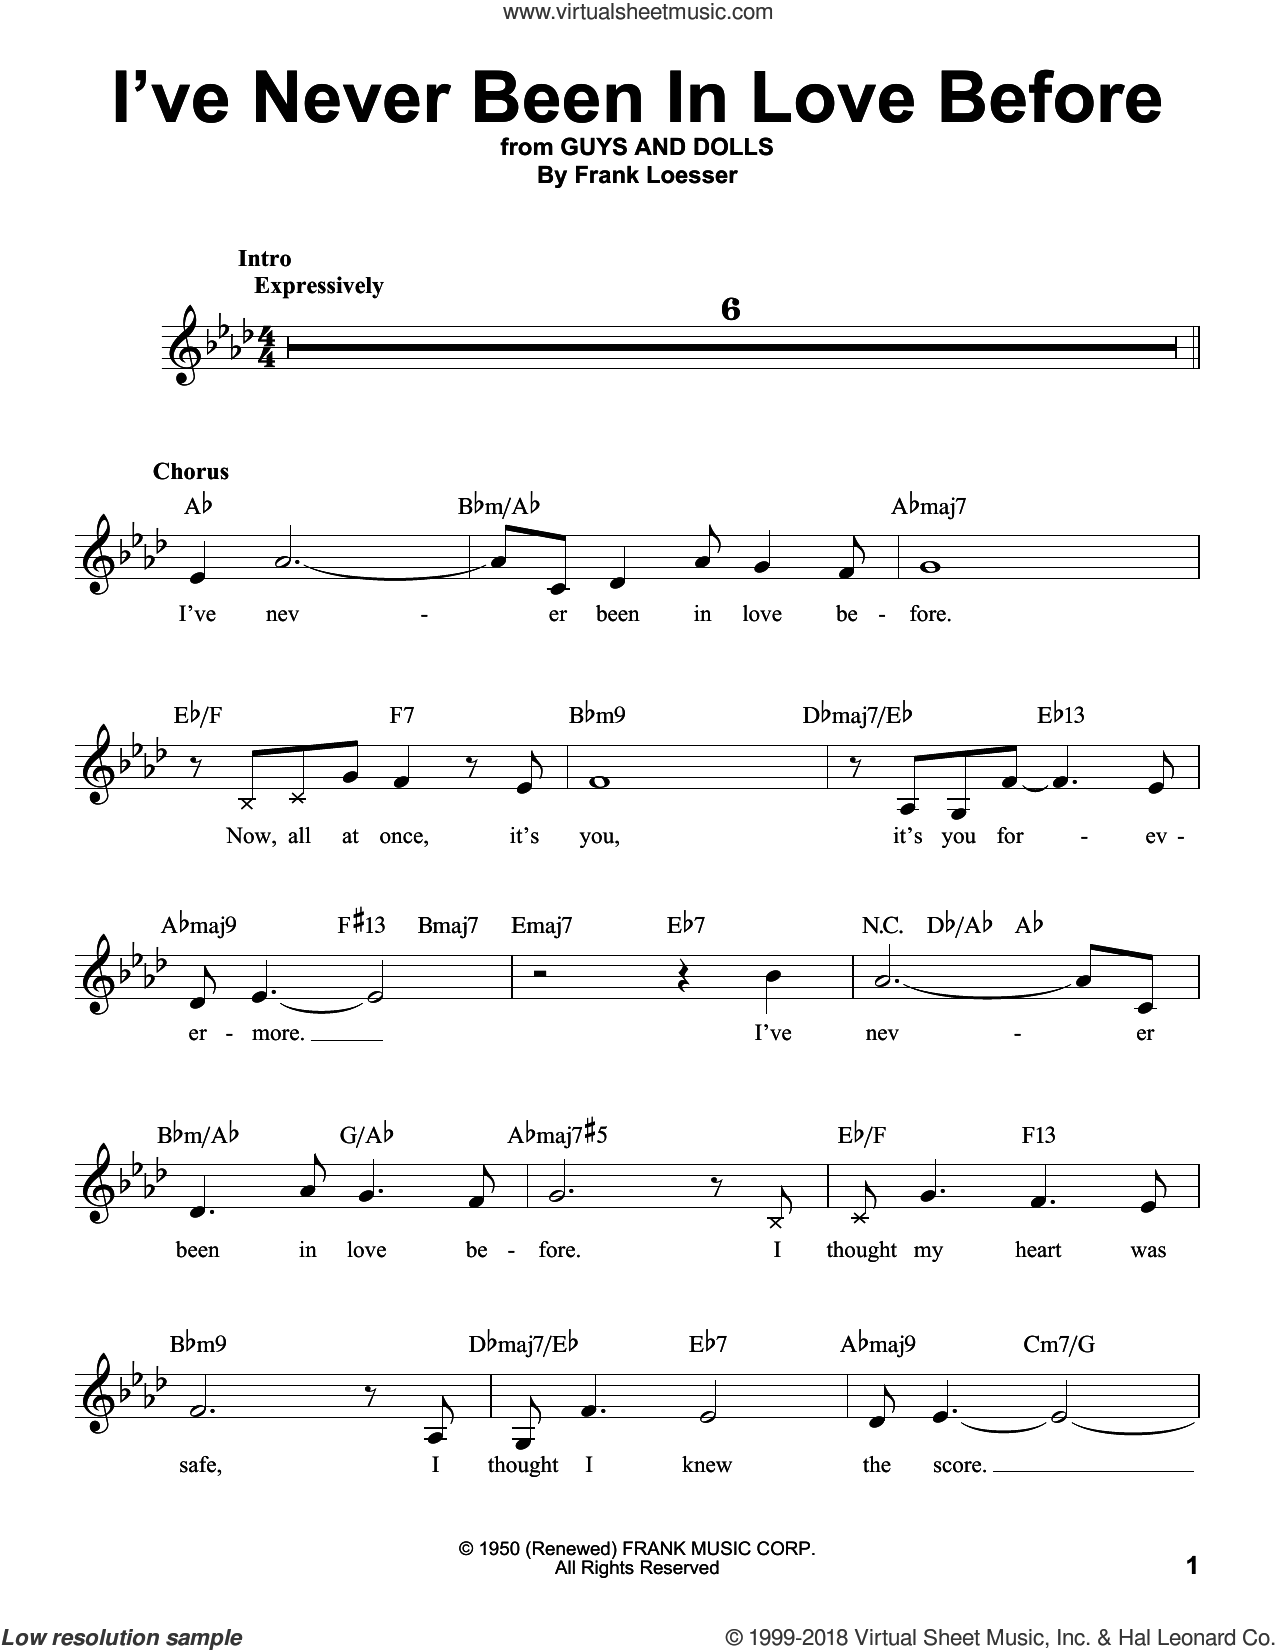 I've Never Been In Love Before sheet music for voice solo by Frank Loesser, Billy Eckstine, Chet Baker and Stan Kenton, intermediate skill level